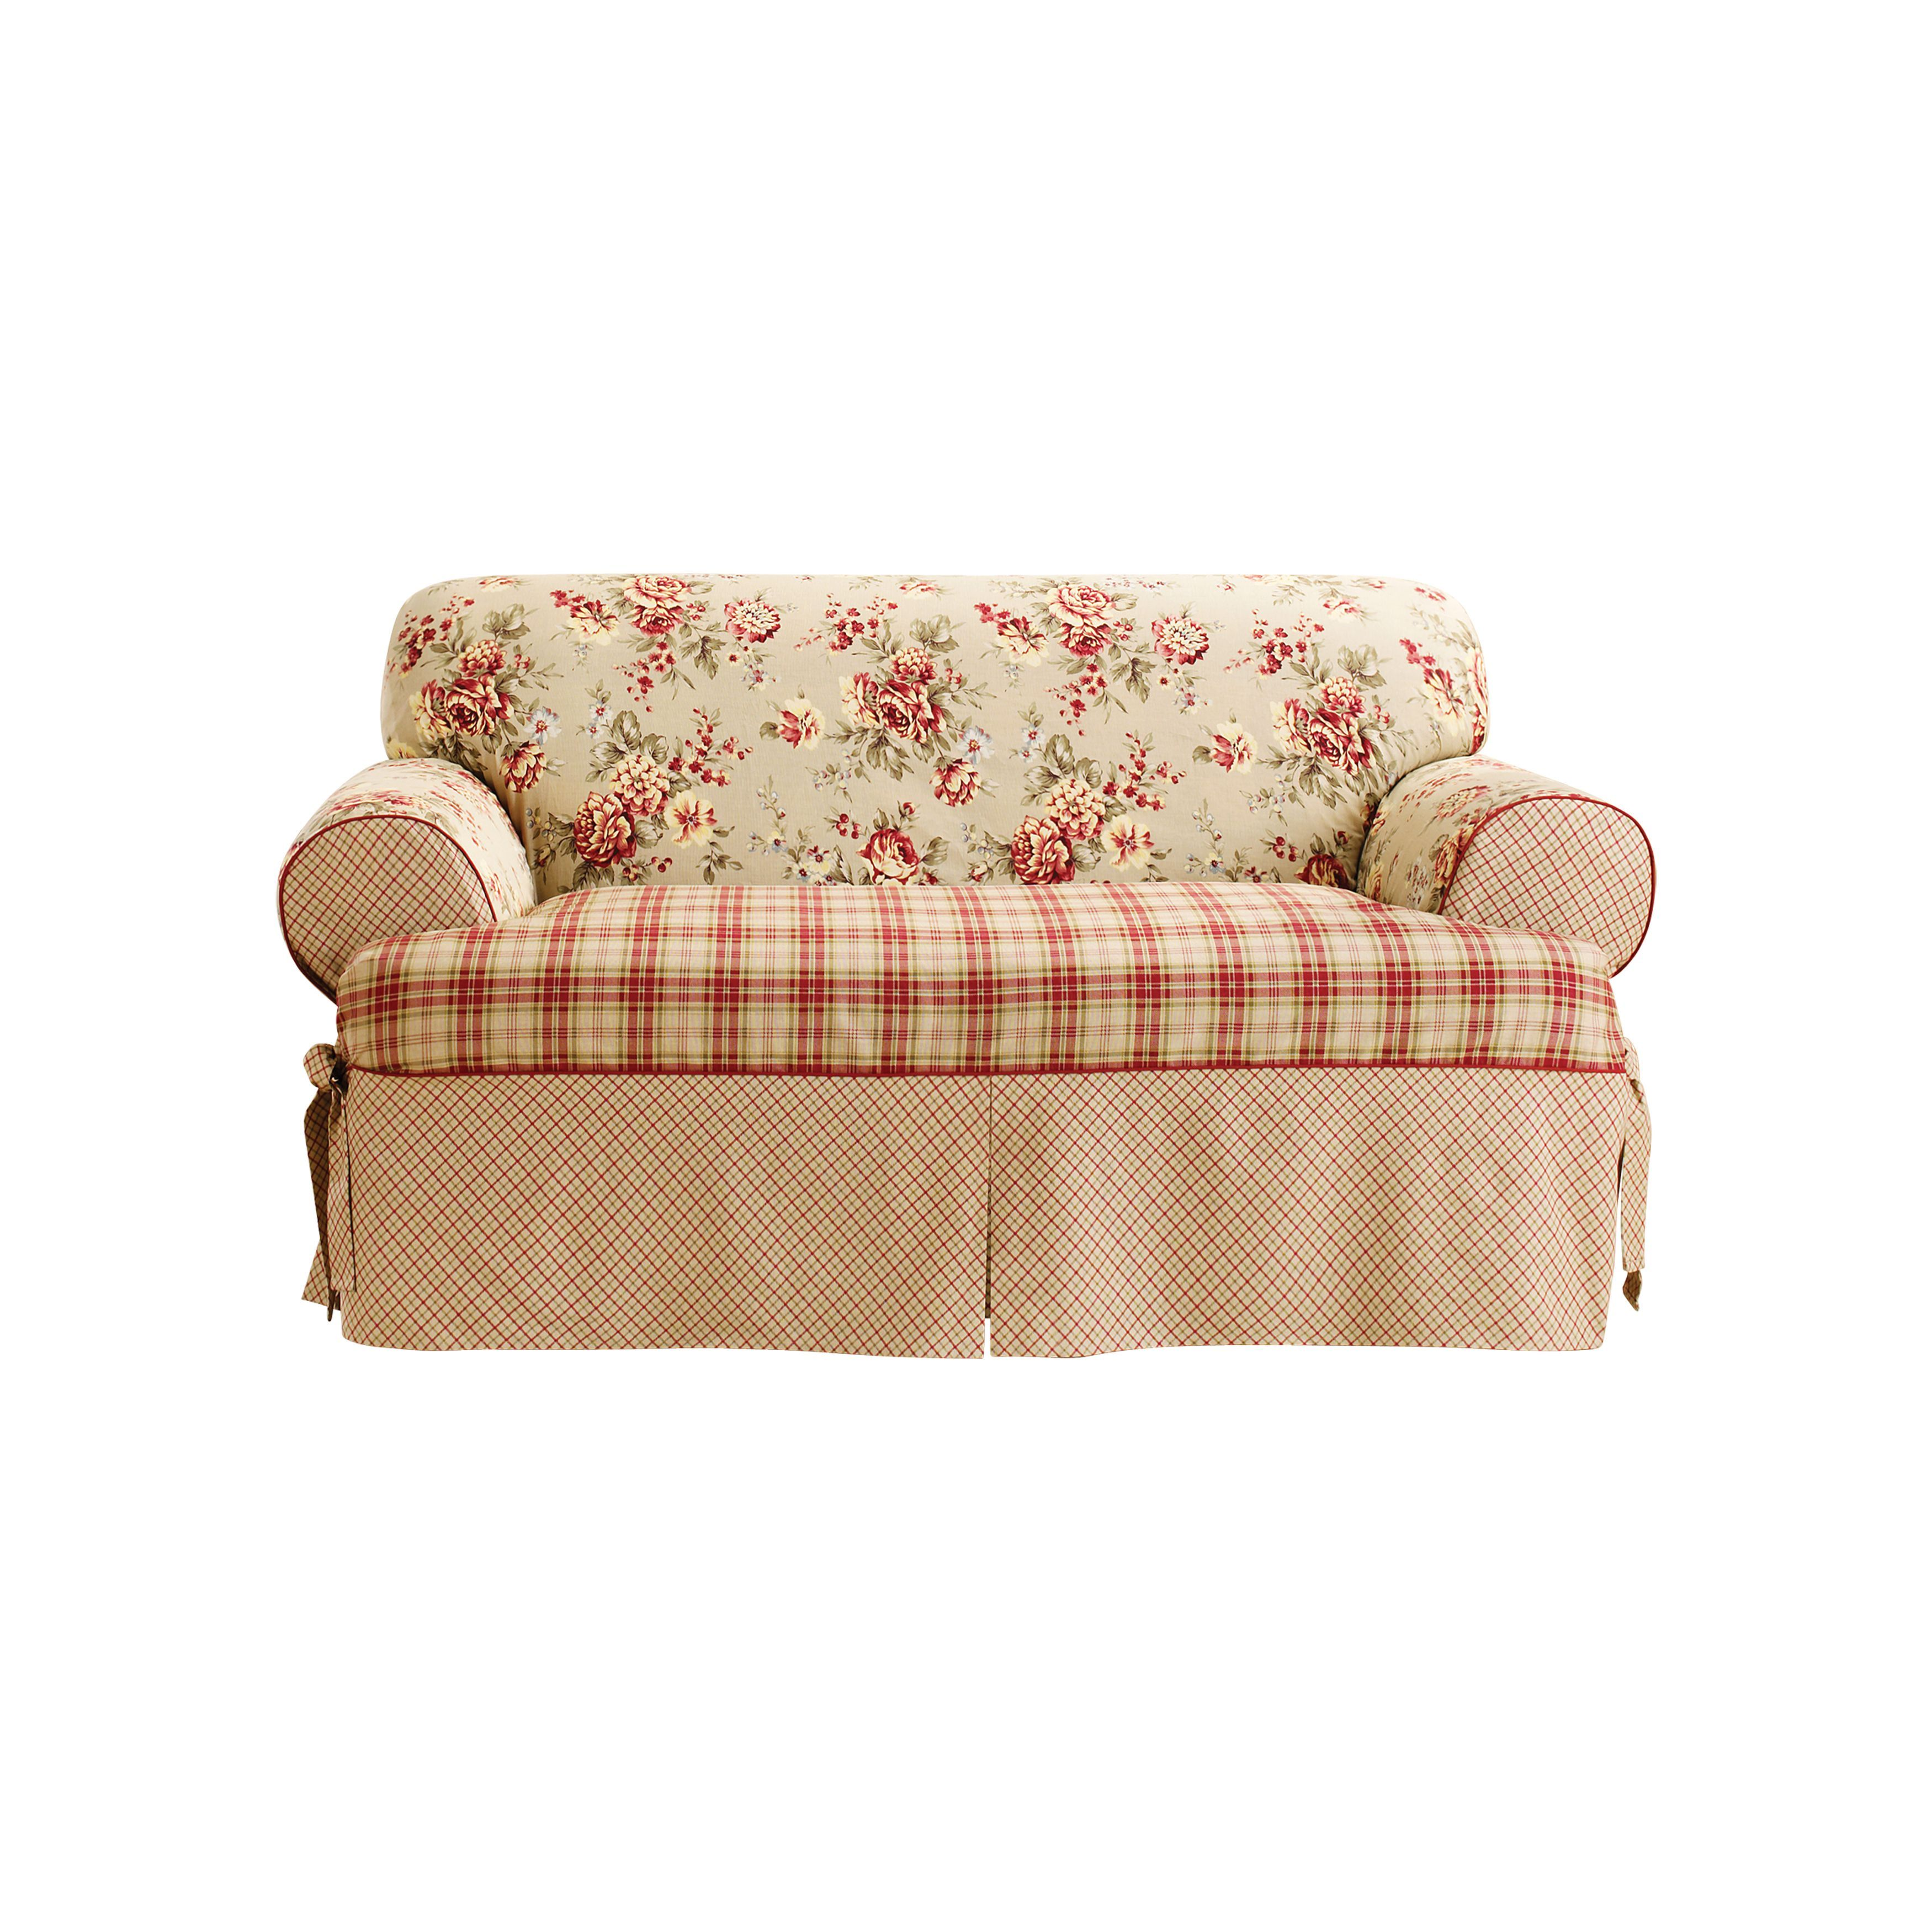 Excellent Sure Fit Lexington 1 Piece T Cushion Loveseat Slipcover Ncnpc Chair Design For Home Ncnpcorg